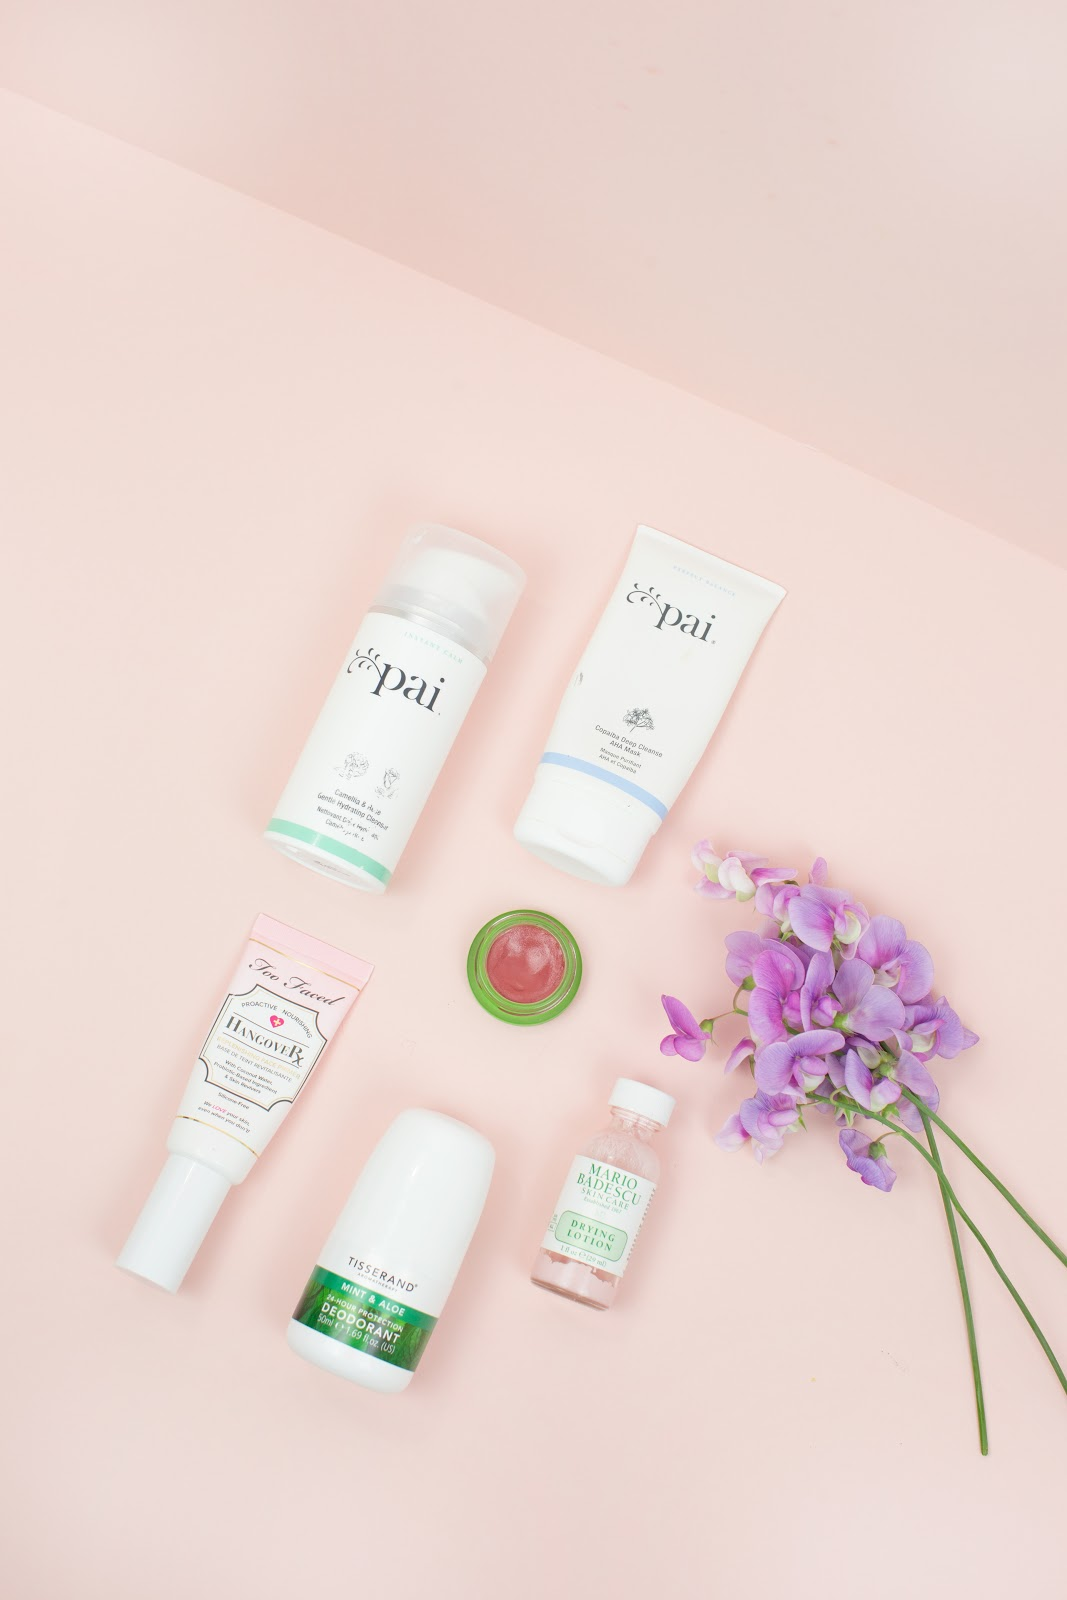 Cruelty freevegan beauty products im loving right now britton loves before i dive into my current cruelty free and vegan beauty faves i want to express how amazing its been to see so many people vocalise support for izmirmasajfo